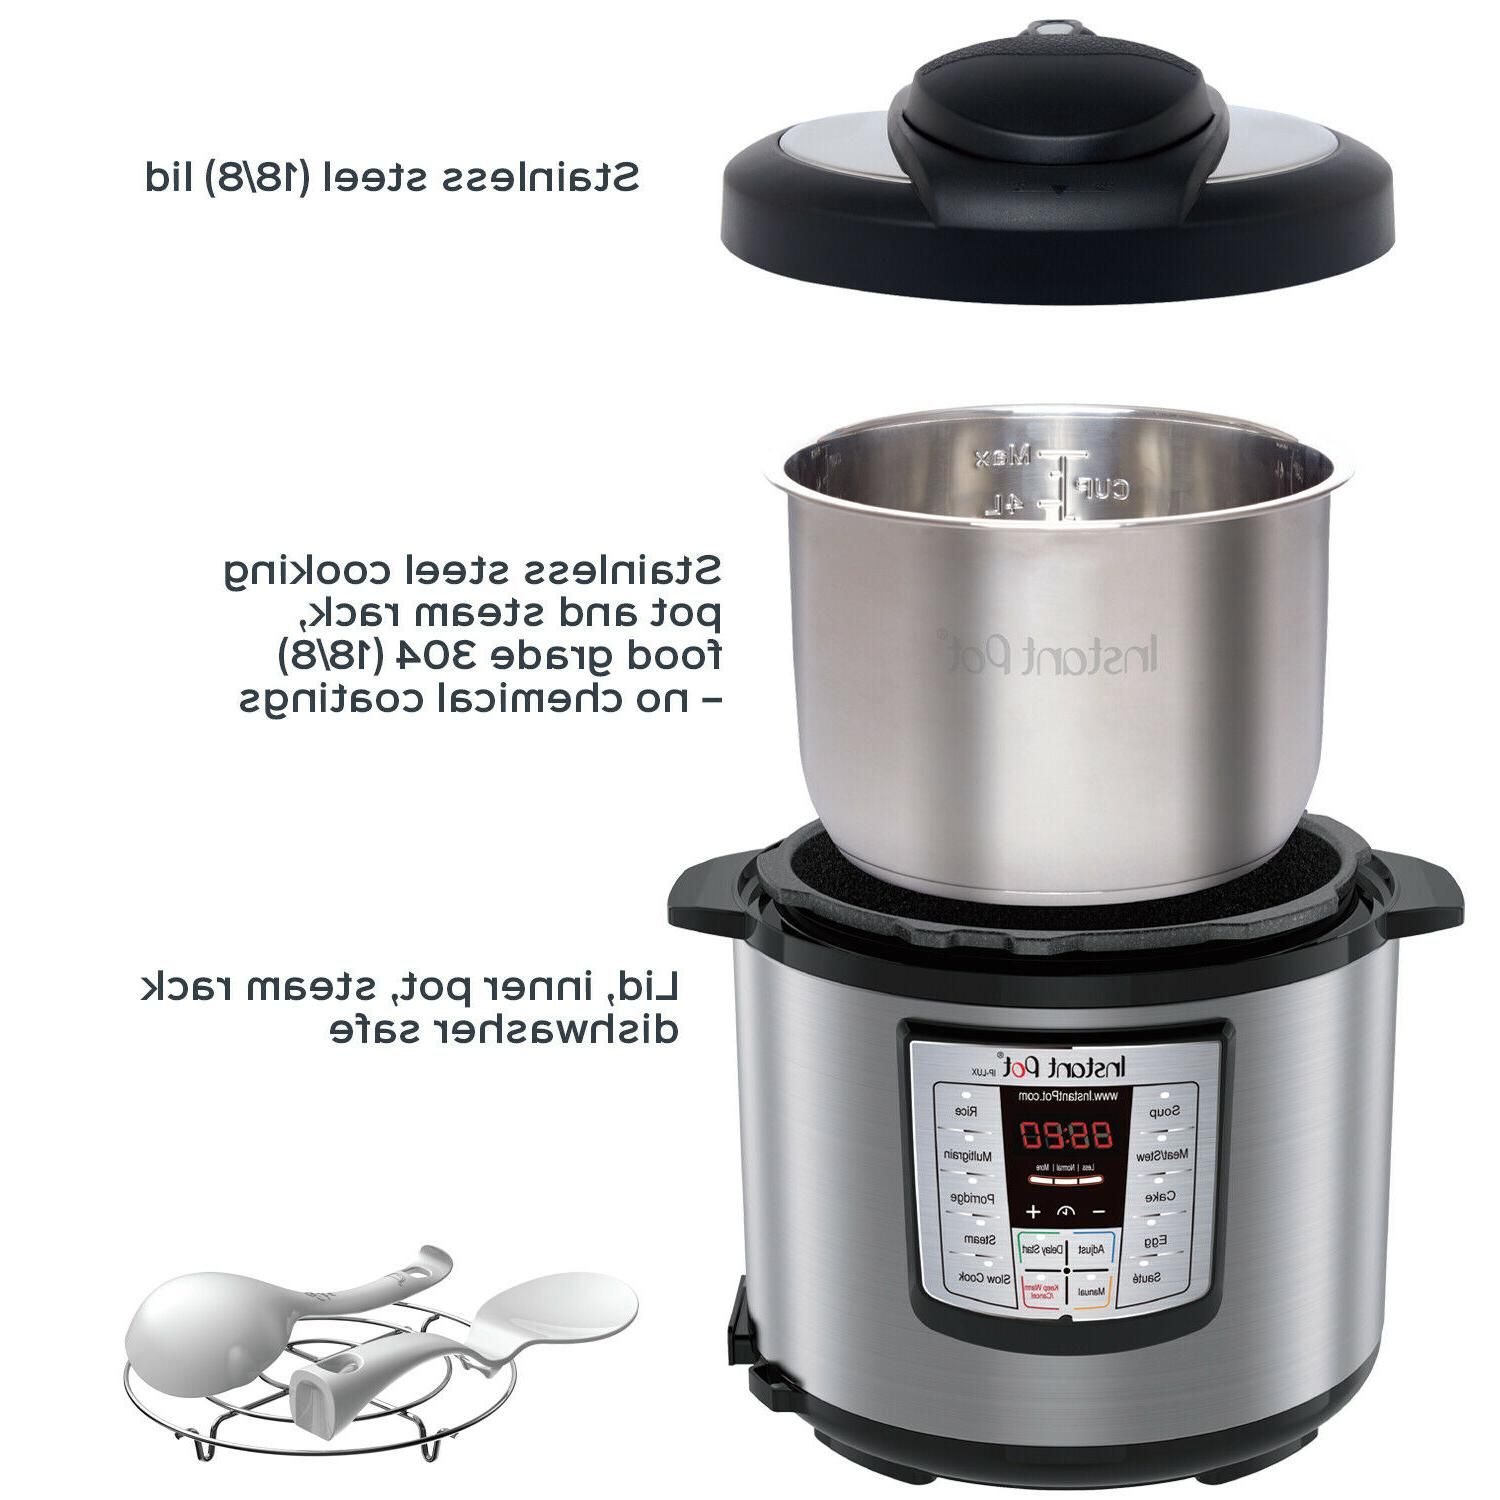 Multi-Use Slow Cooker, 6 6 in